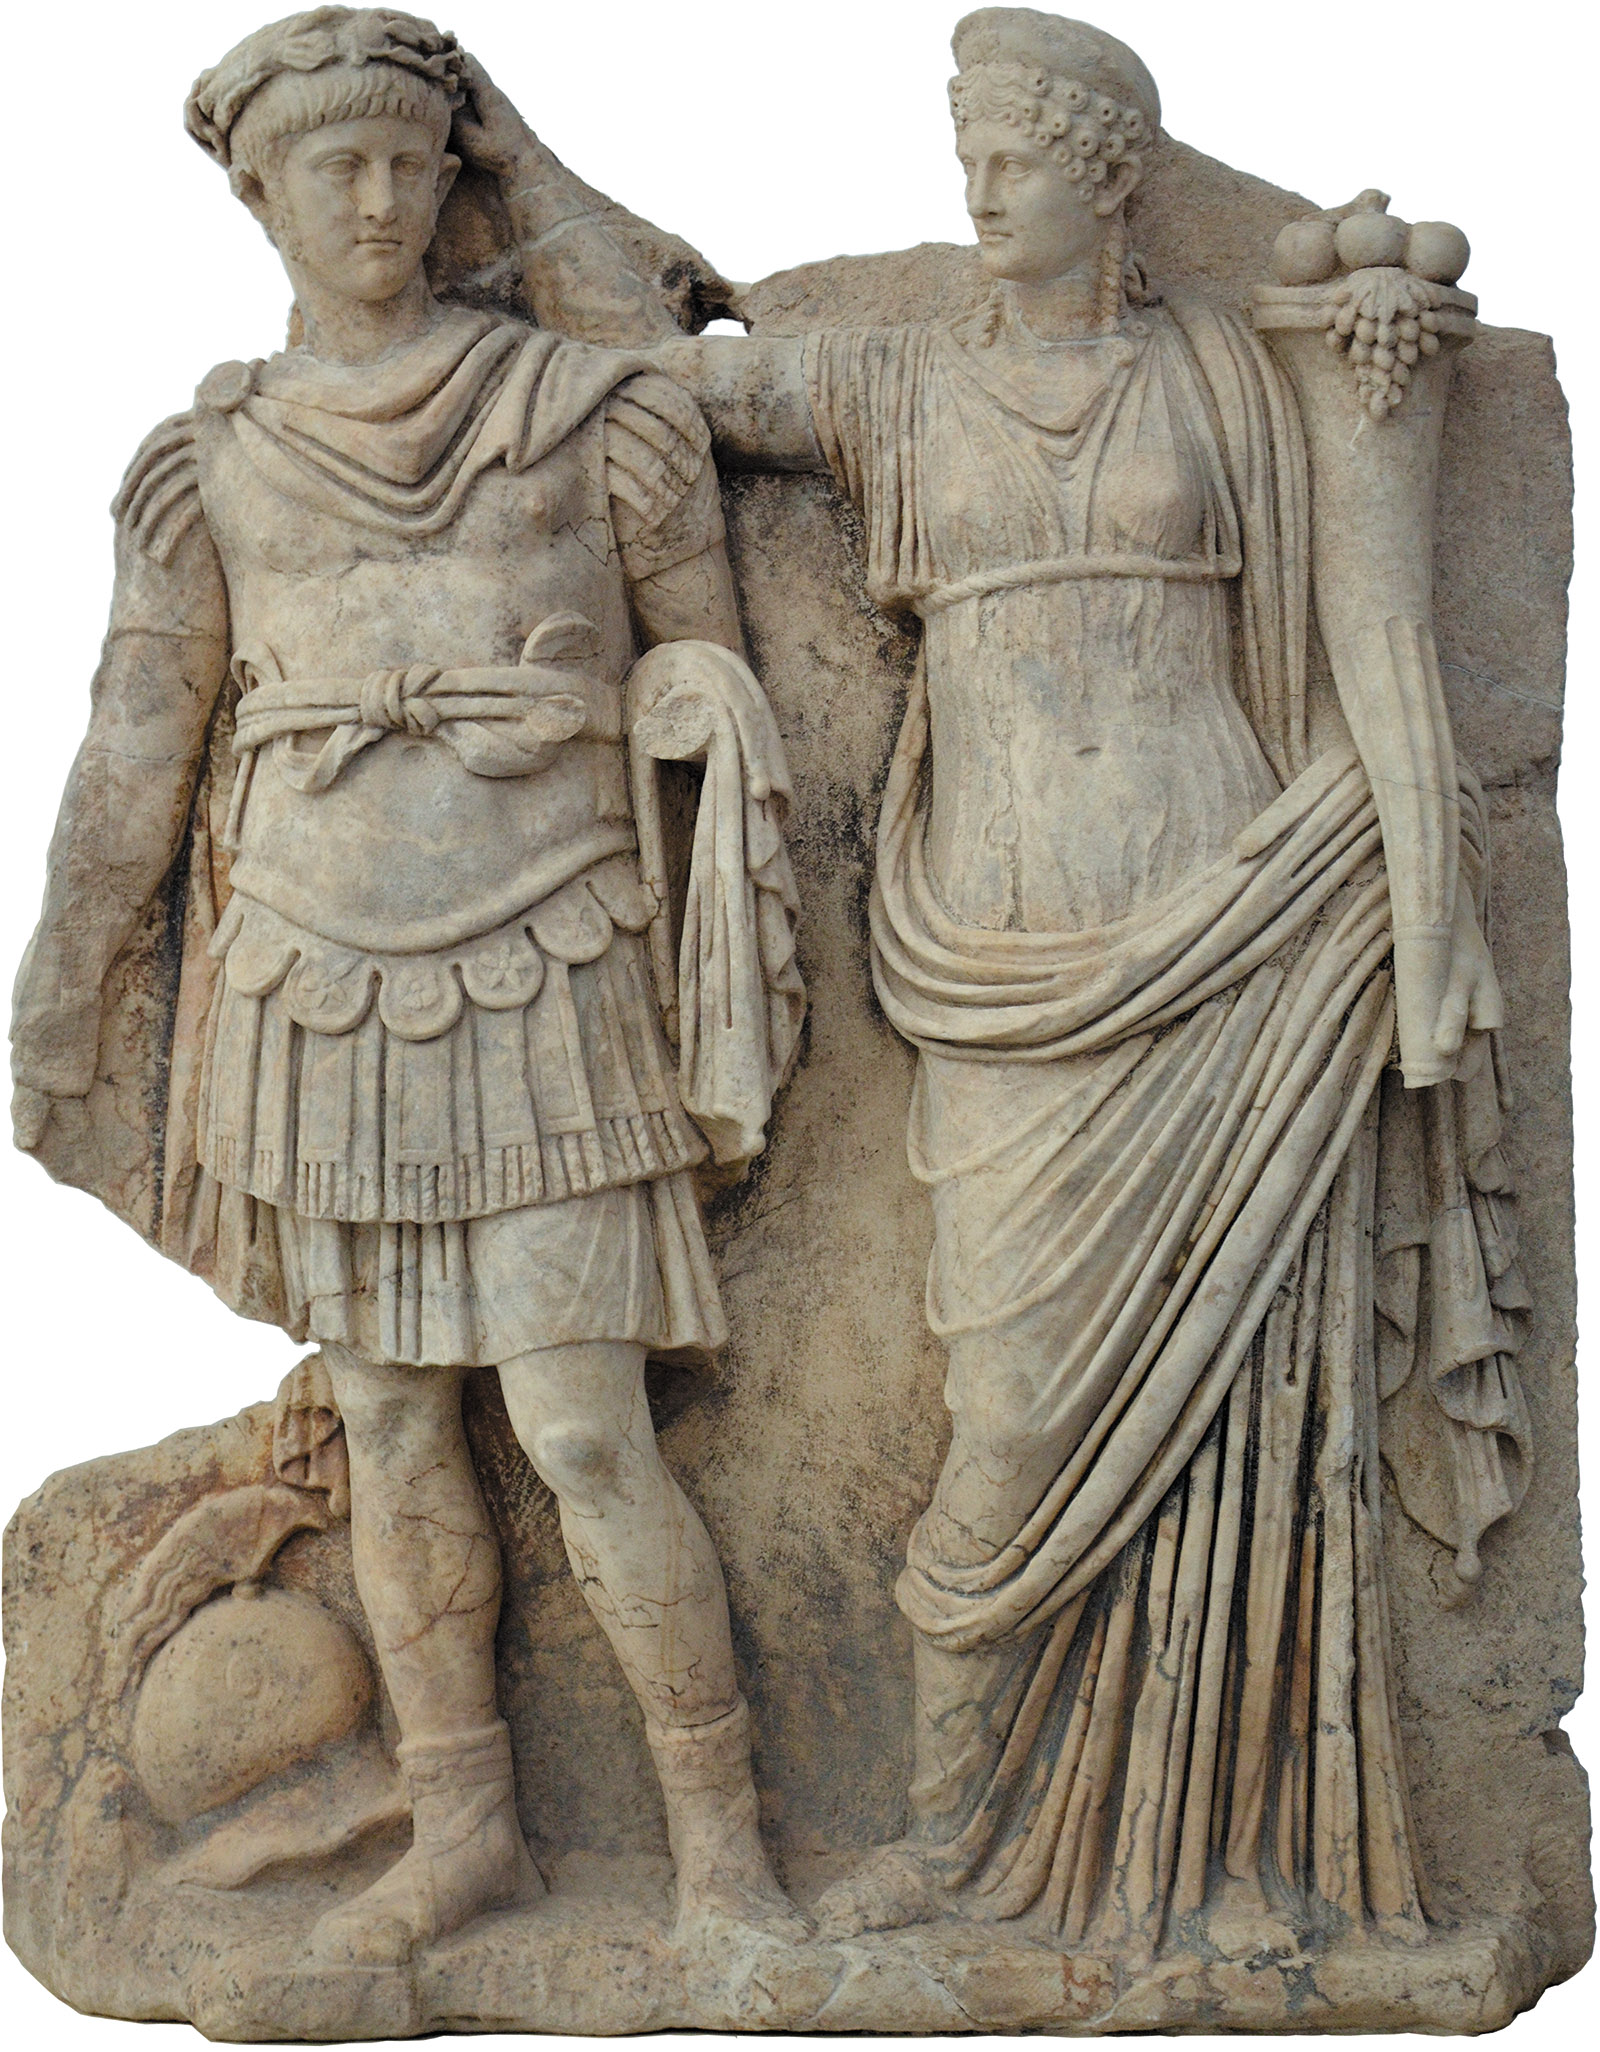 Agrippina crowning her son Nero emperor of Rome, 54 CE; relief from the Sebasteion, an excavated temple in the ancient city of Aphrodisias, in present-day Turkey